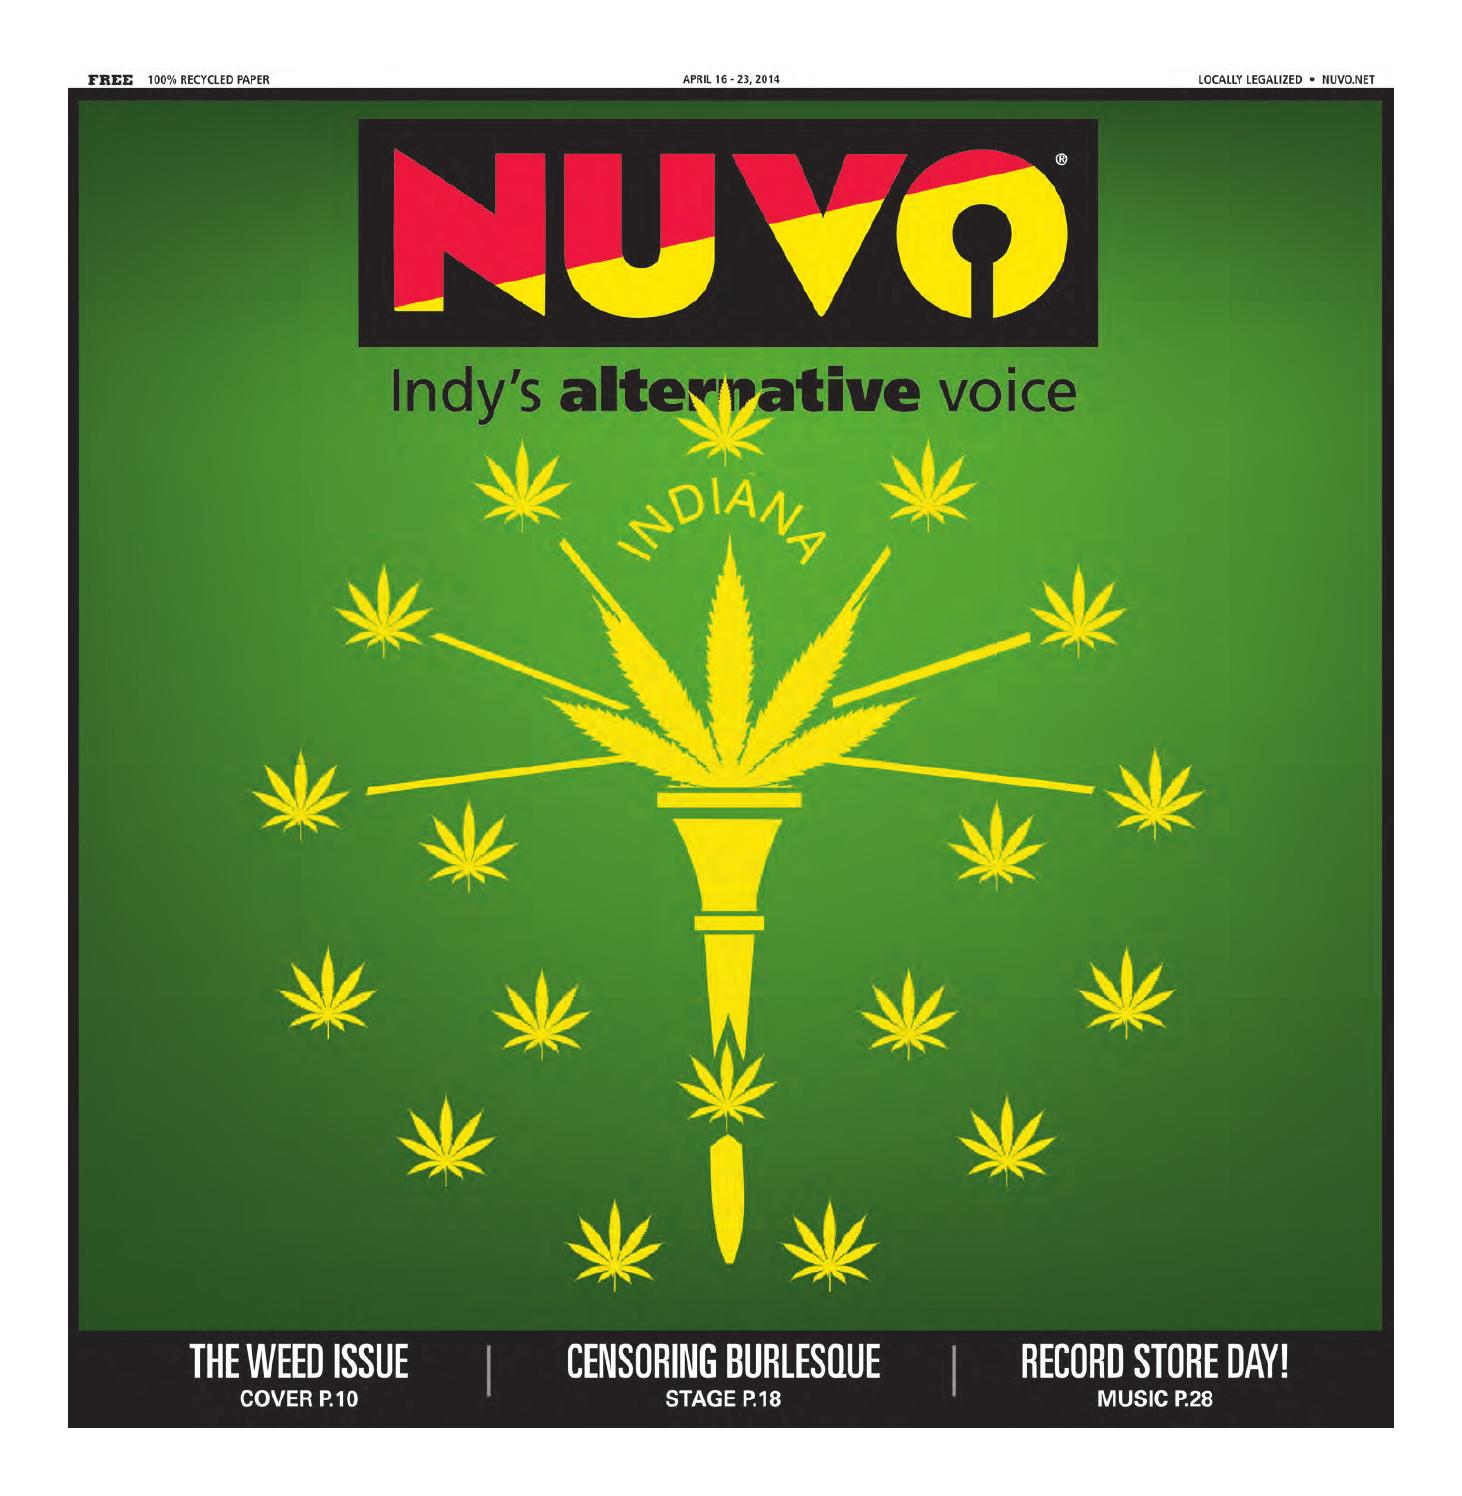 Nuvo Indy 39 S Alternative Voice April 16 2014 By Nuvo